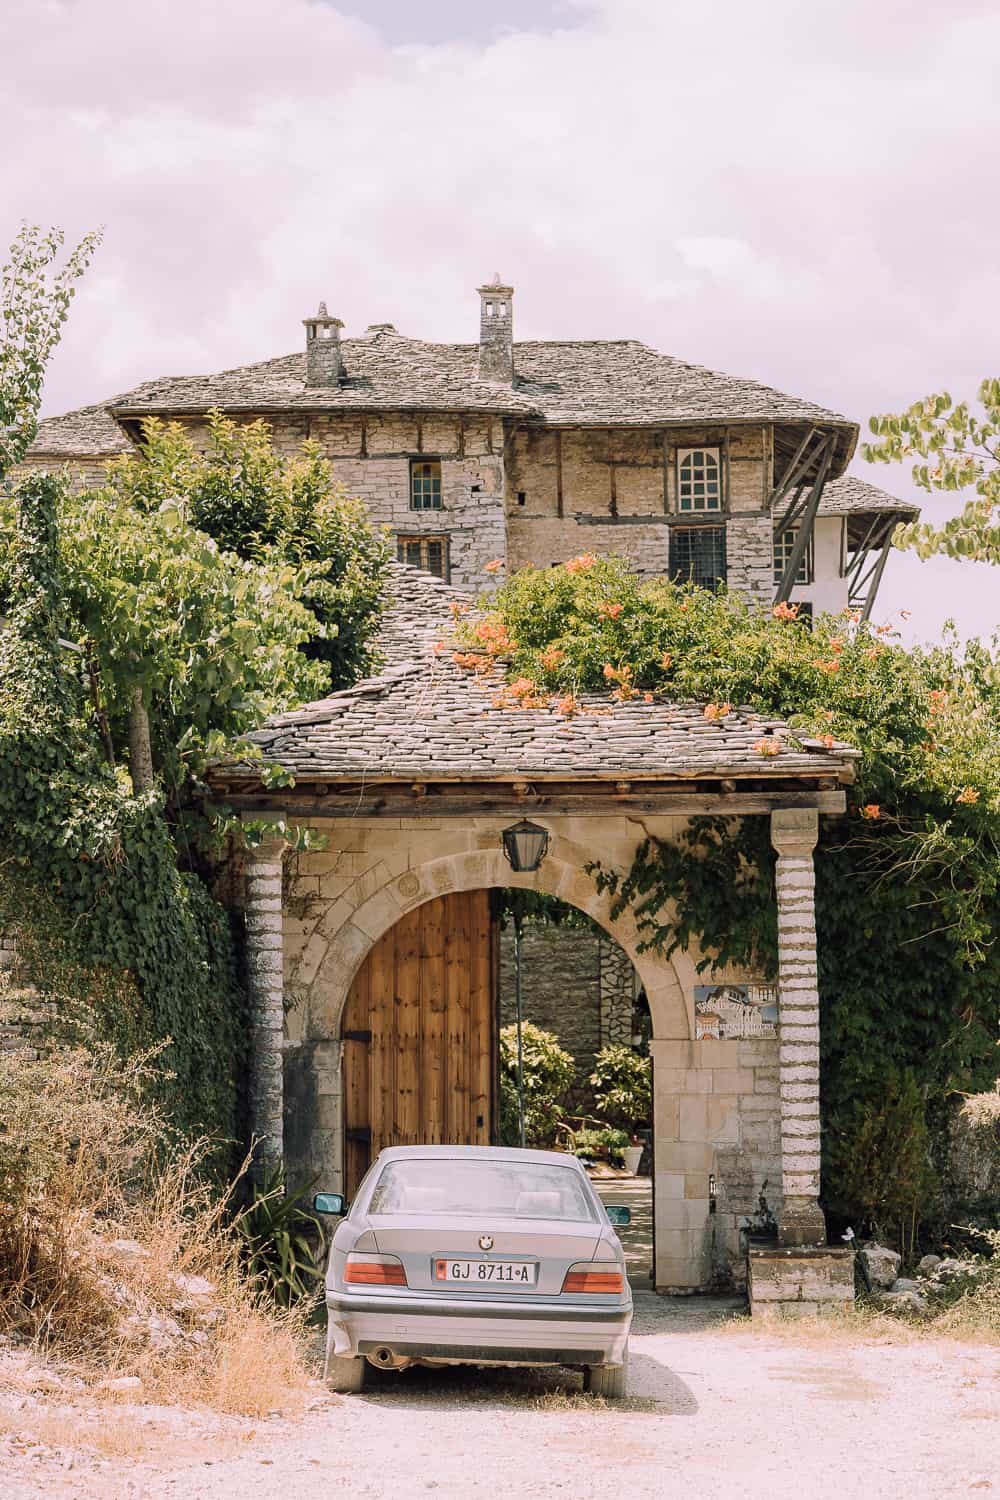 old house in albania with car parked out front